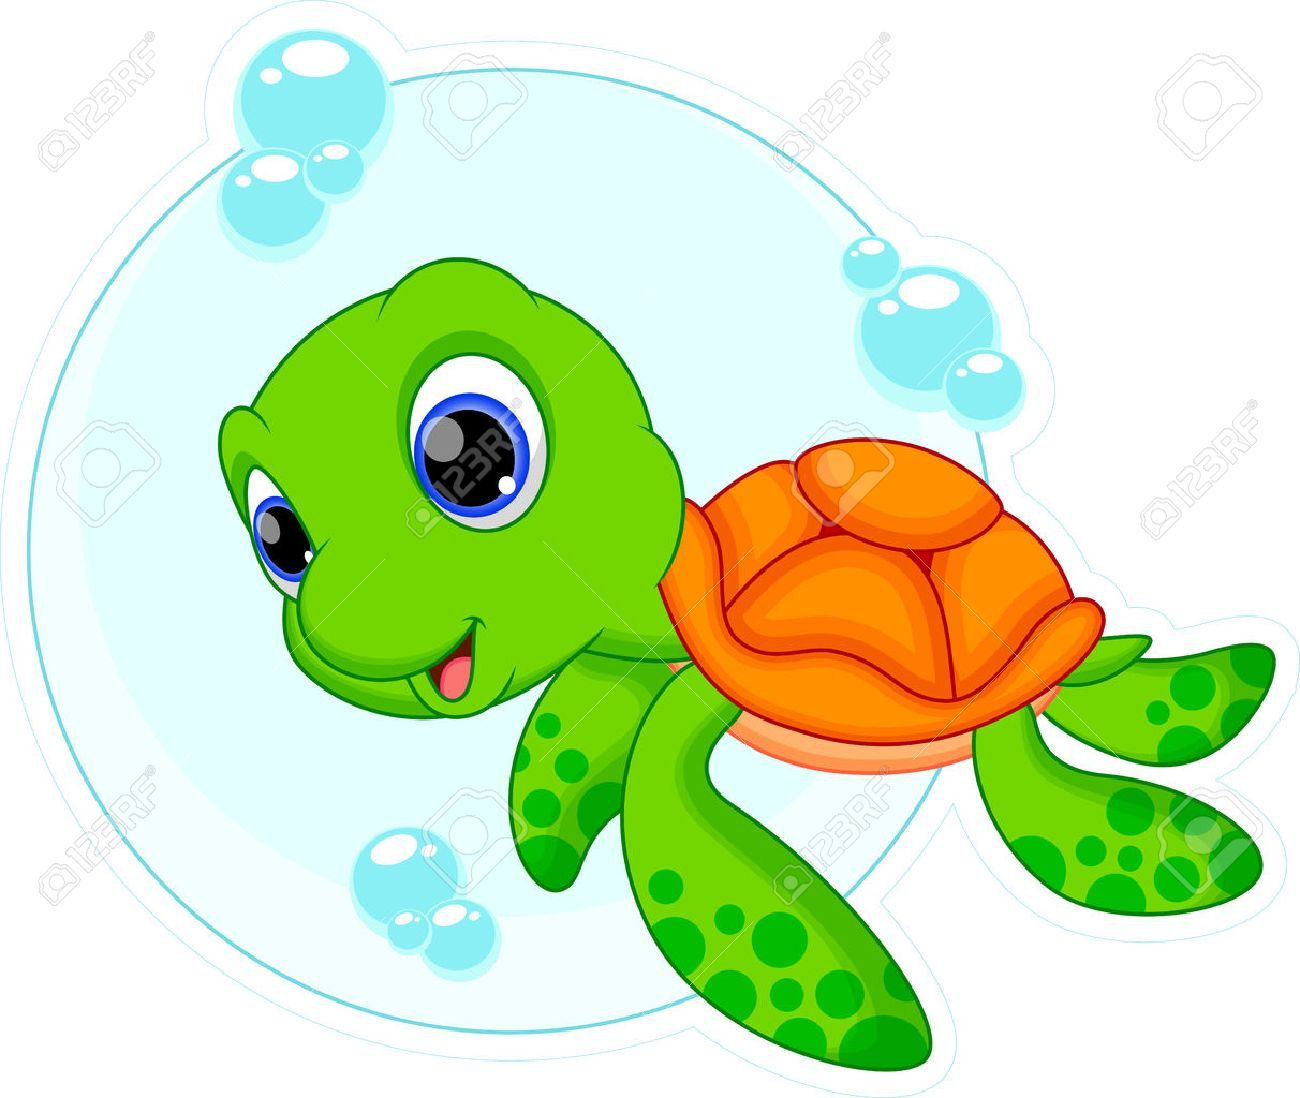 Cute Turtle Cartoon Cute Turtle Cartoon Cute Turtles Cute